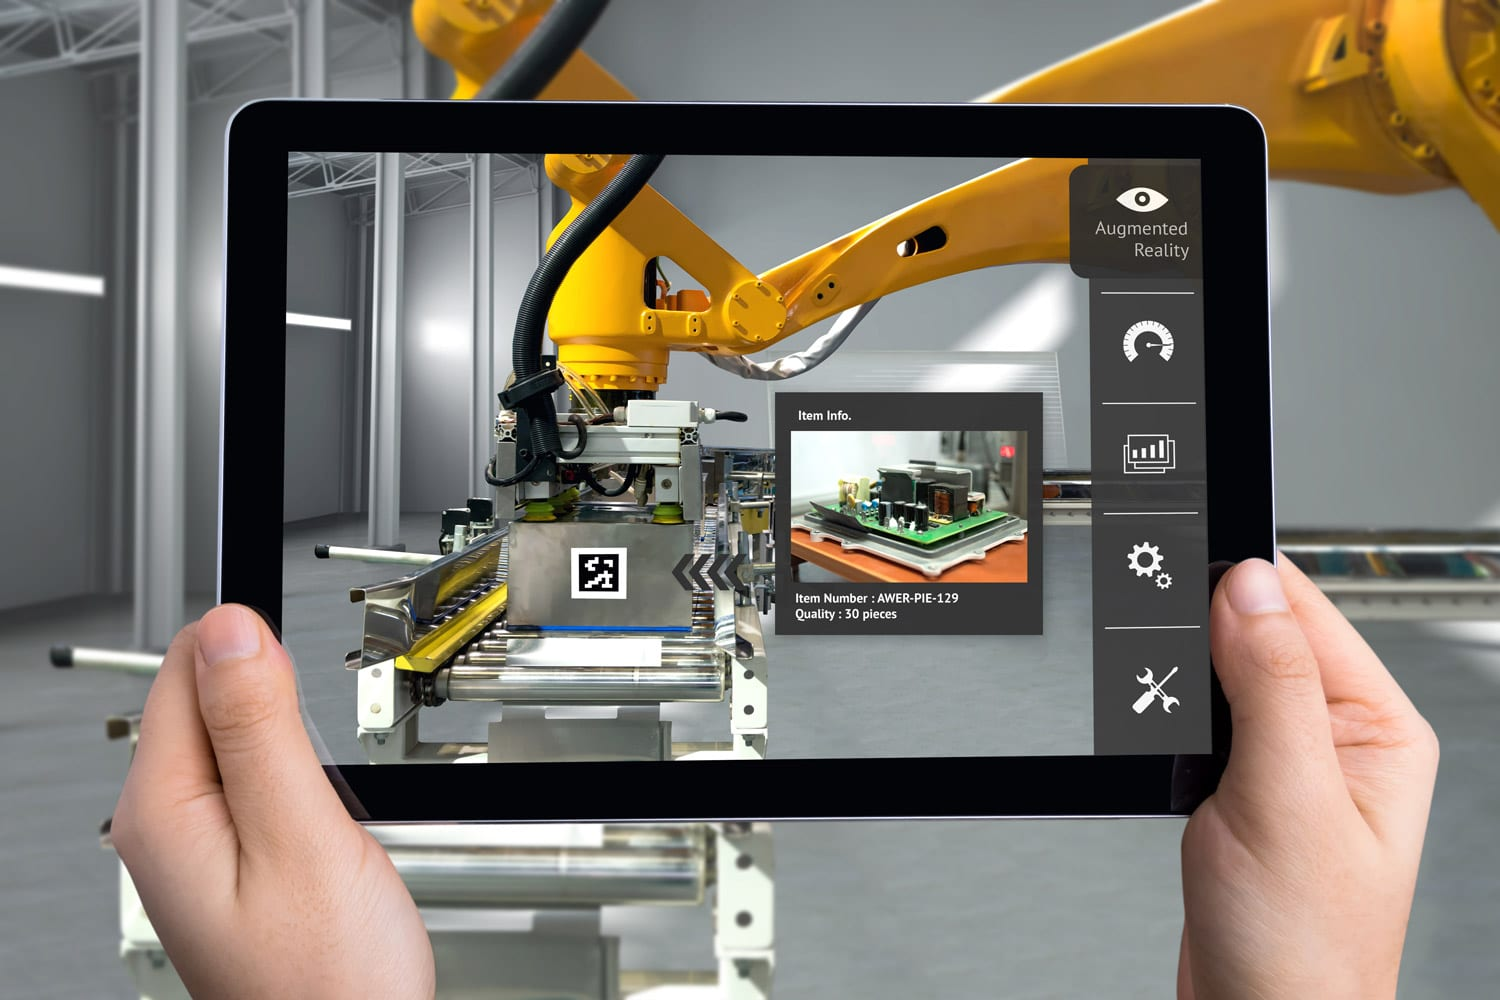 How Augmented Reality Will Change the Field Service Industry